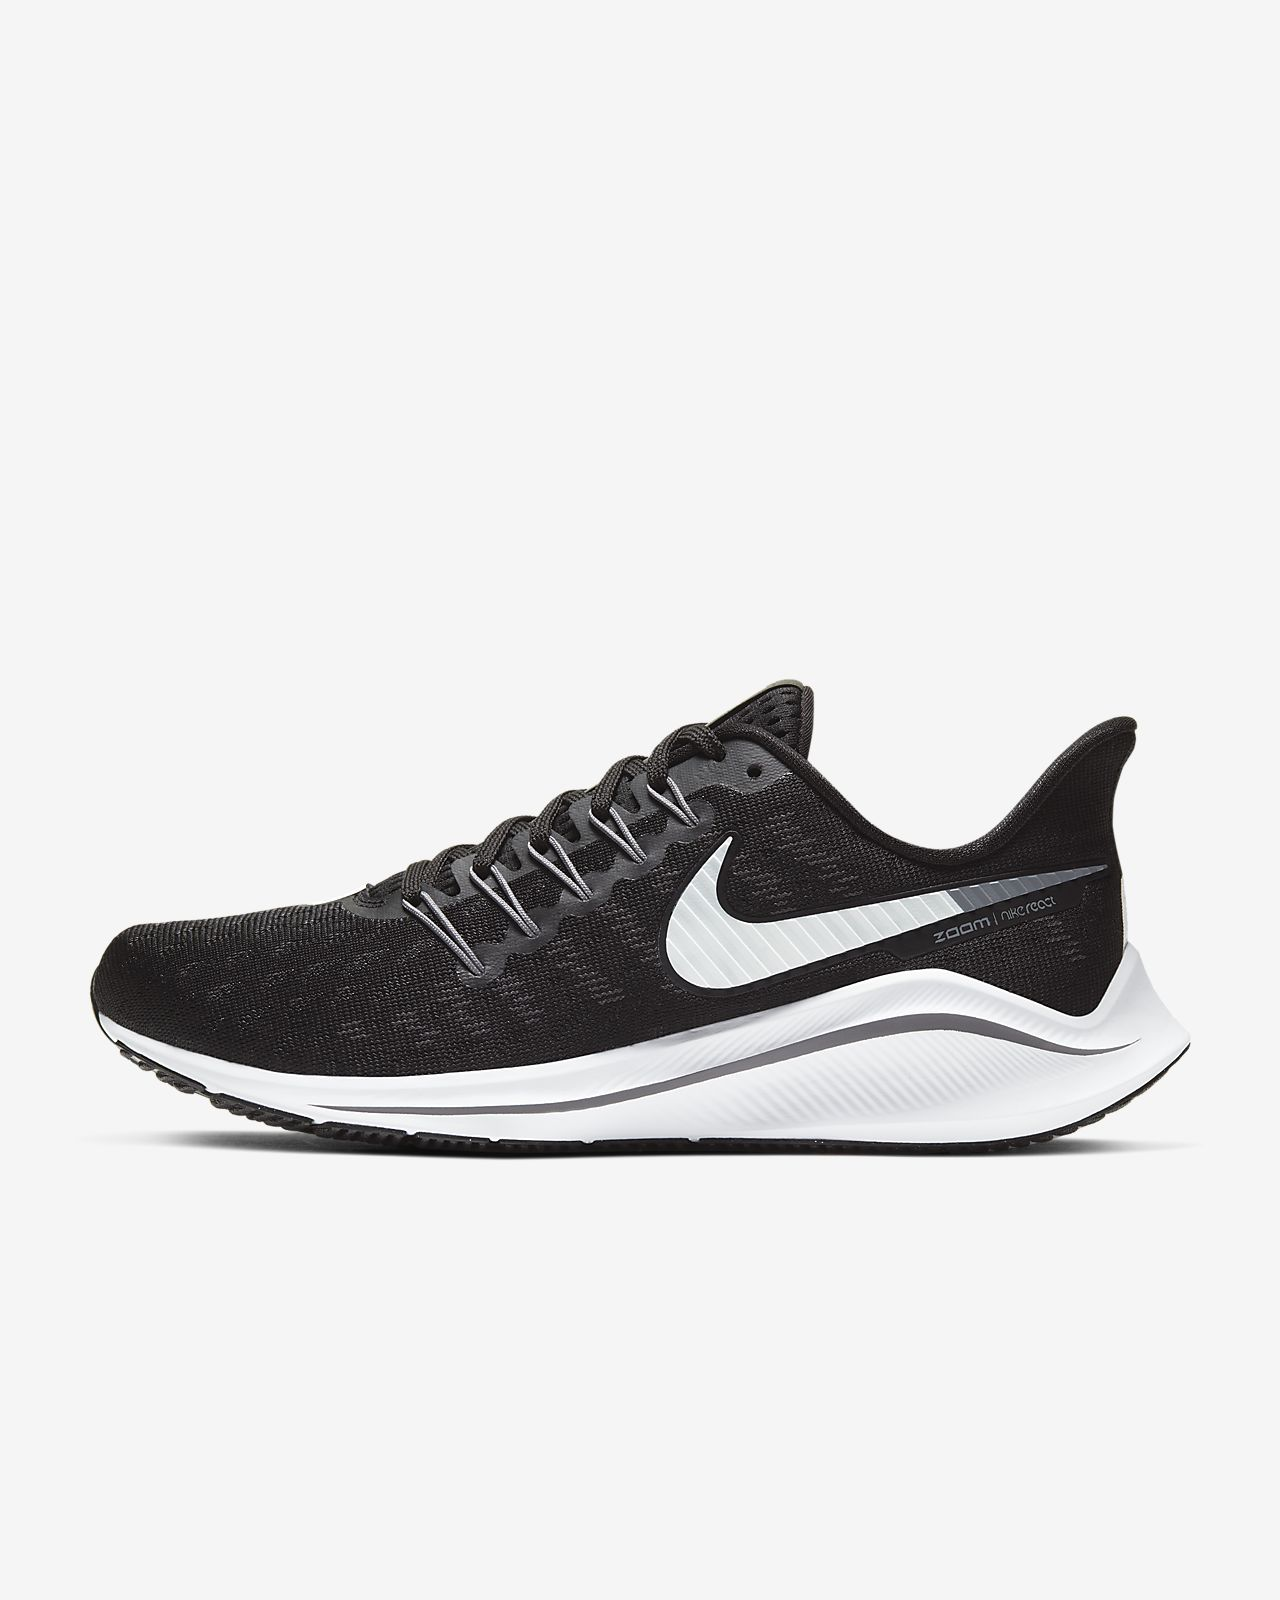 14 Best OFF White X Nike images | Nike, Free running shoes